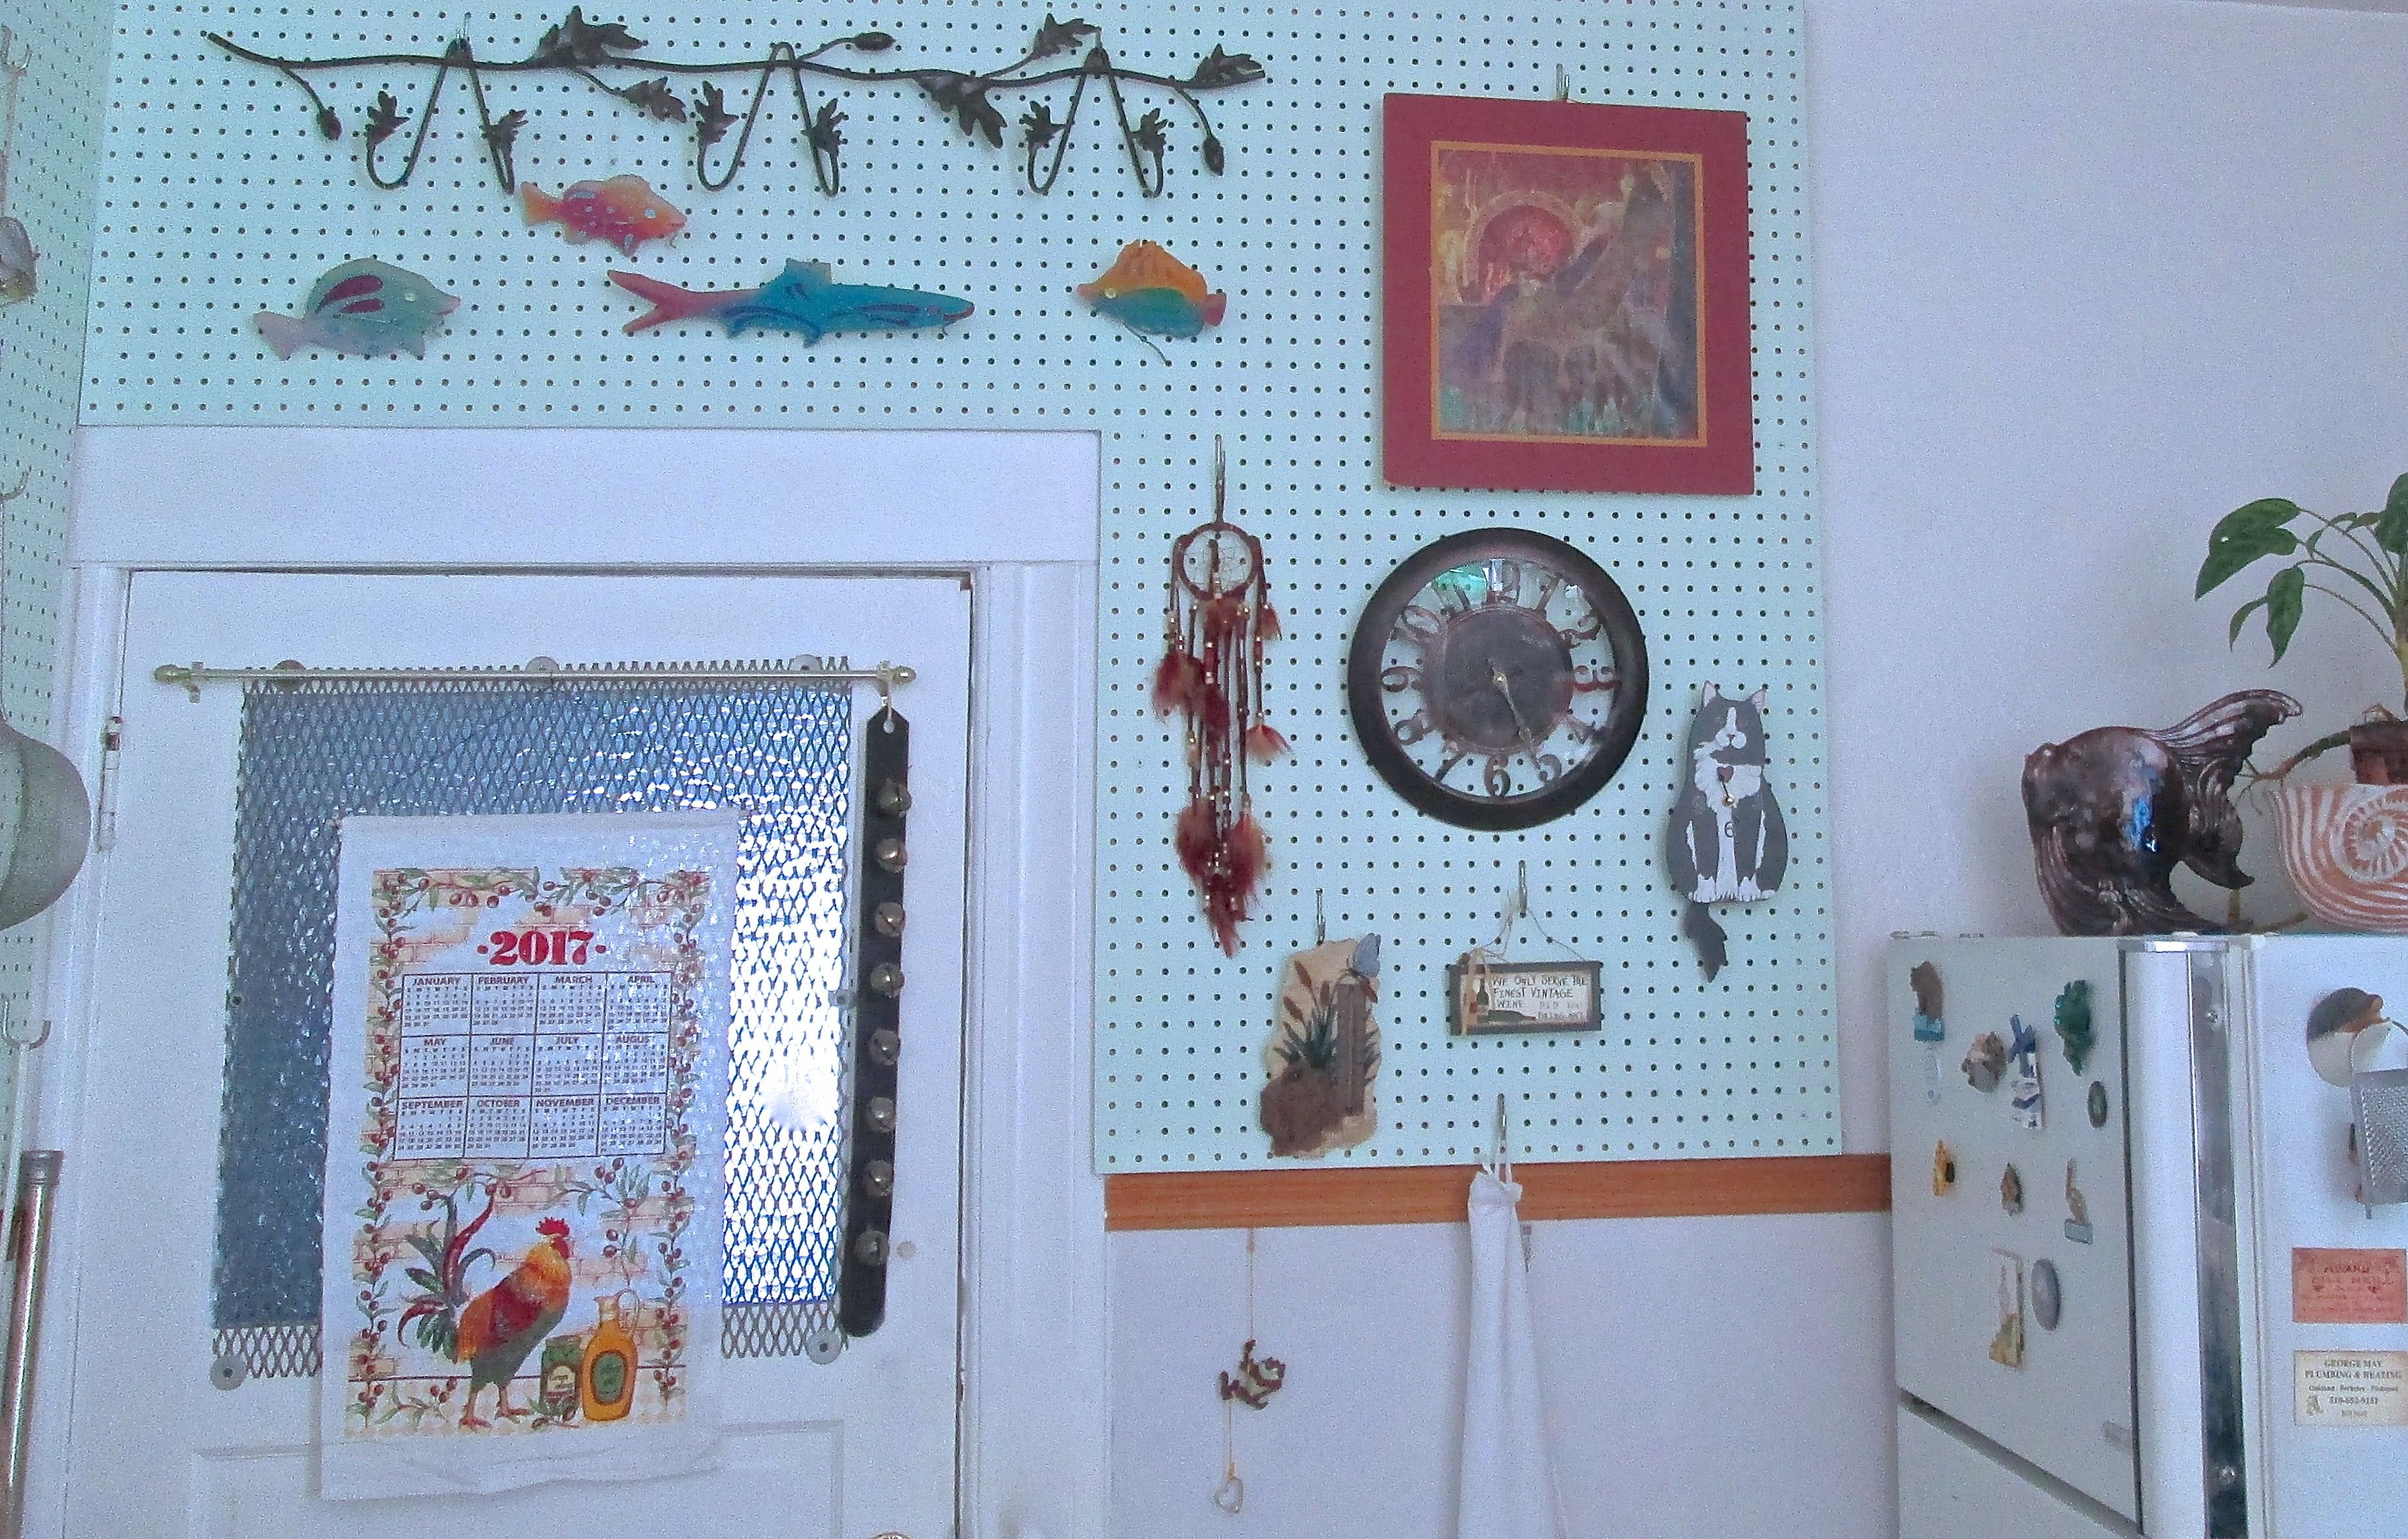 Pegboard covered kitchen walls. Great to hang kitchen tools, clock ...